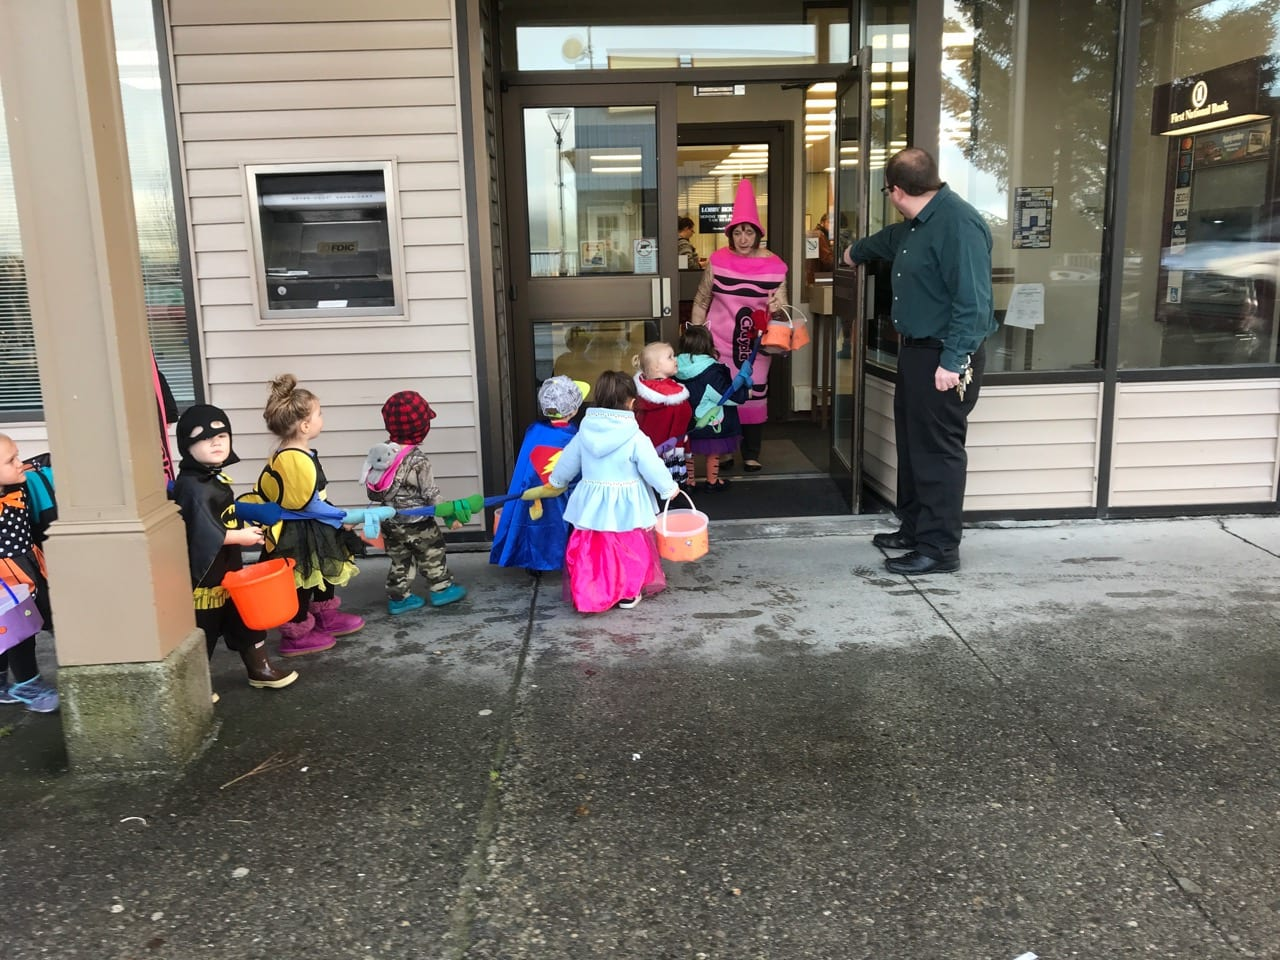 FNBA Operations Assistant Bryan Mills holds the door open as Children's Pallas trick-or-treaters, guided by Loreene Pallas, head in to begin their Main Street Halloween visits. Photo by Dick Shellhorn/The Cordova Times